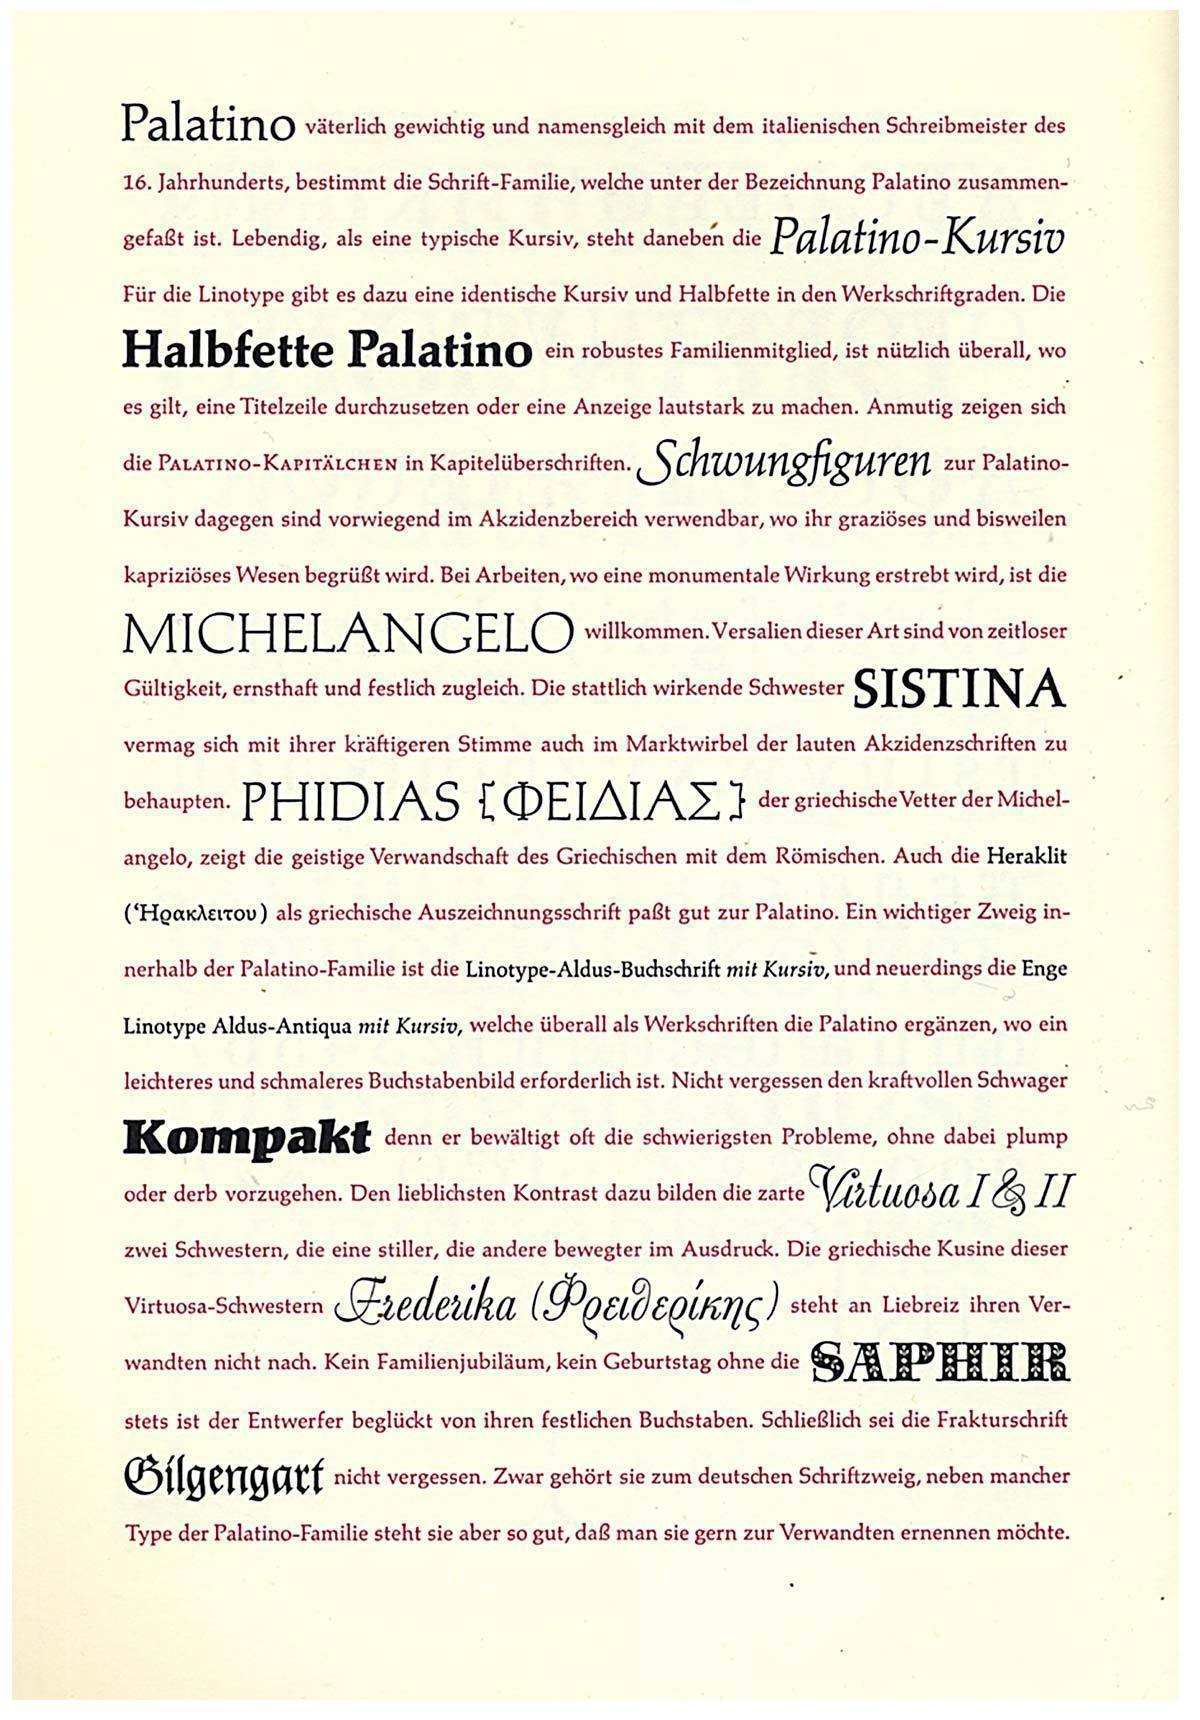 "This Stempel specimen from 1953 suggests that not only Michelangelo, Sistina and Aldus are part of the Palatino family, but also Kompakt is supposedly ""a strong brother-in-law"" and even Zapf's blackletter face Gilgengart should be recognized ""as a relative"" – with a wink of the eye."